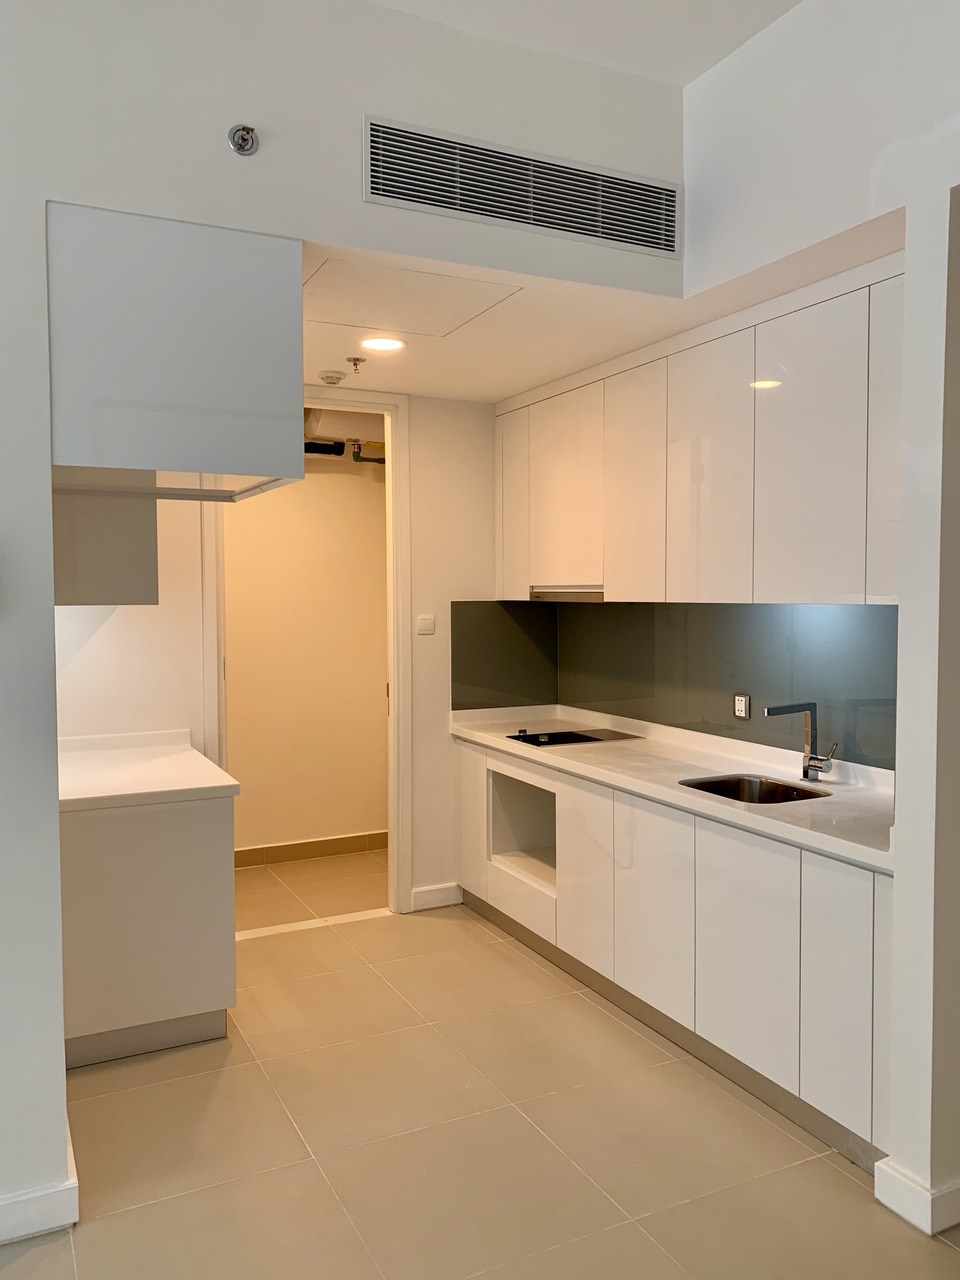 gateway thao dien apartment for rent in district 2 hcmc D222319(16)